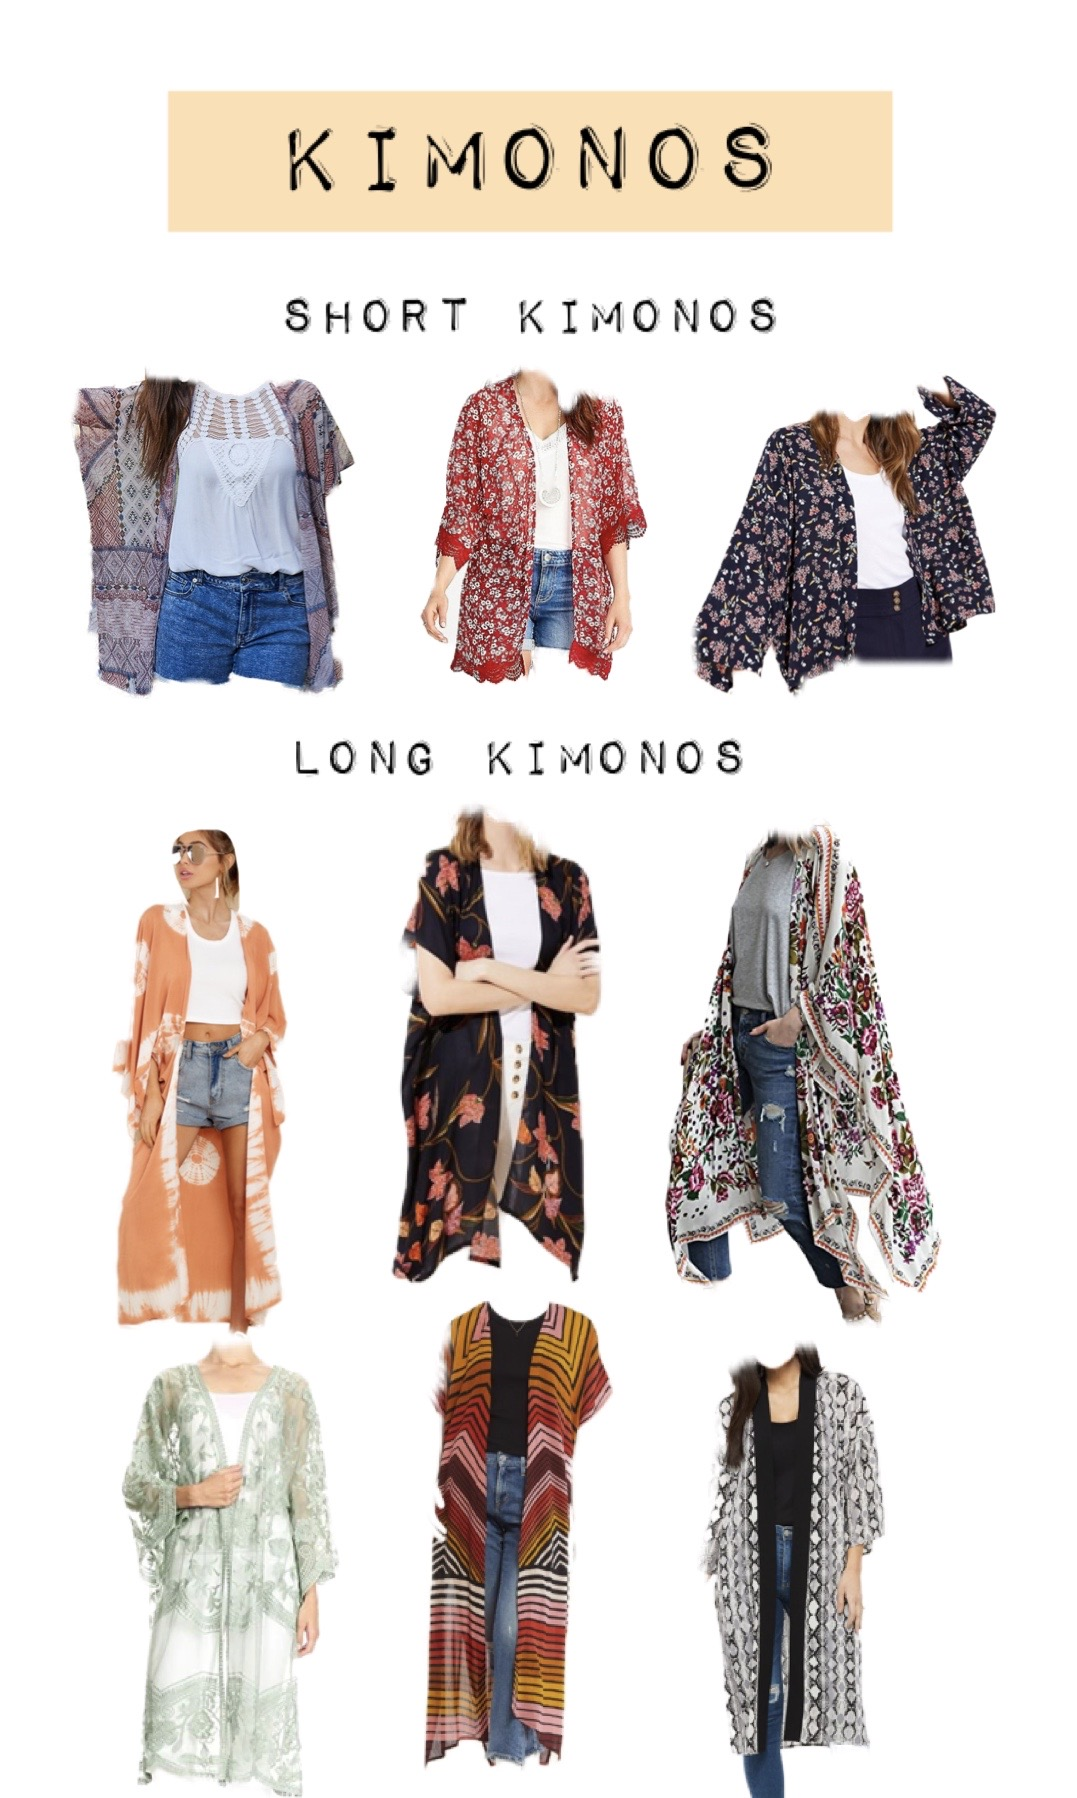 Best Summer Kimonos to Buy | Product Collage by popular Maryland lifestyle blog, Dreaming Loud: collage image of various long and short kimonos.